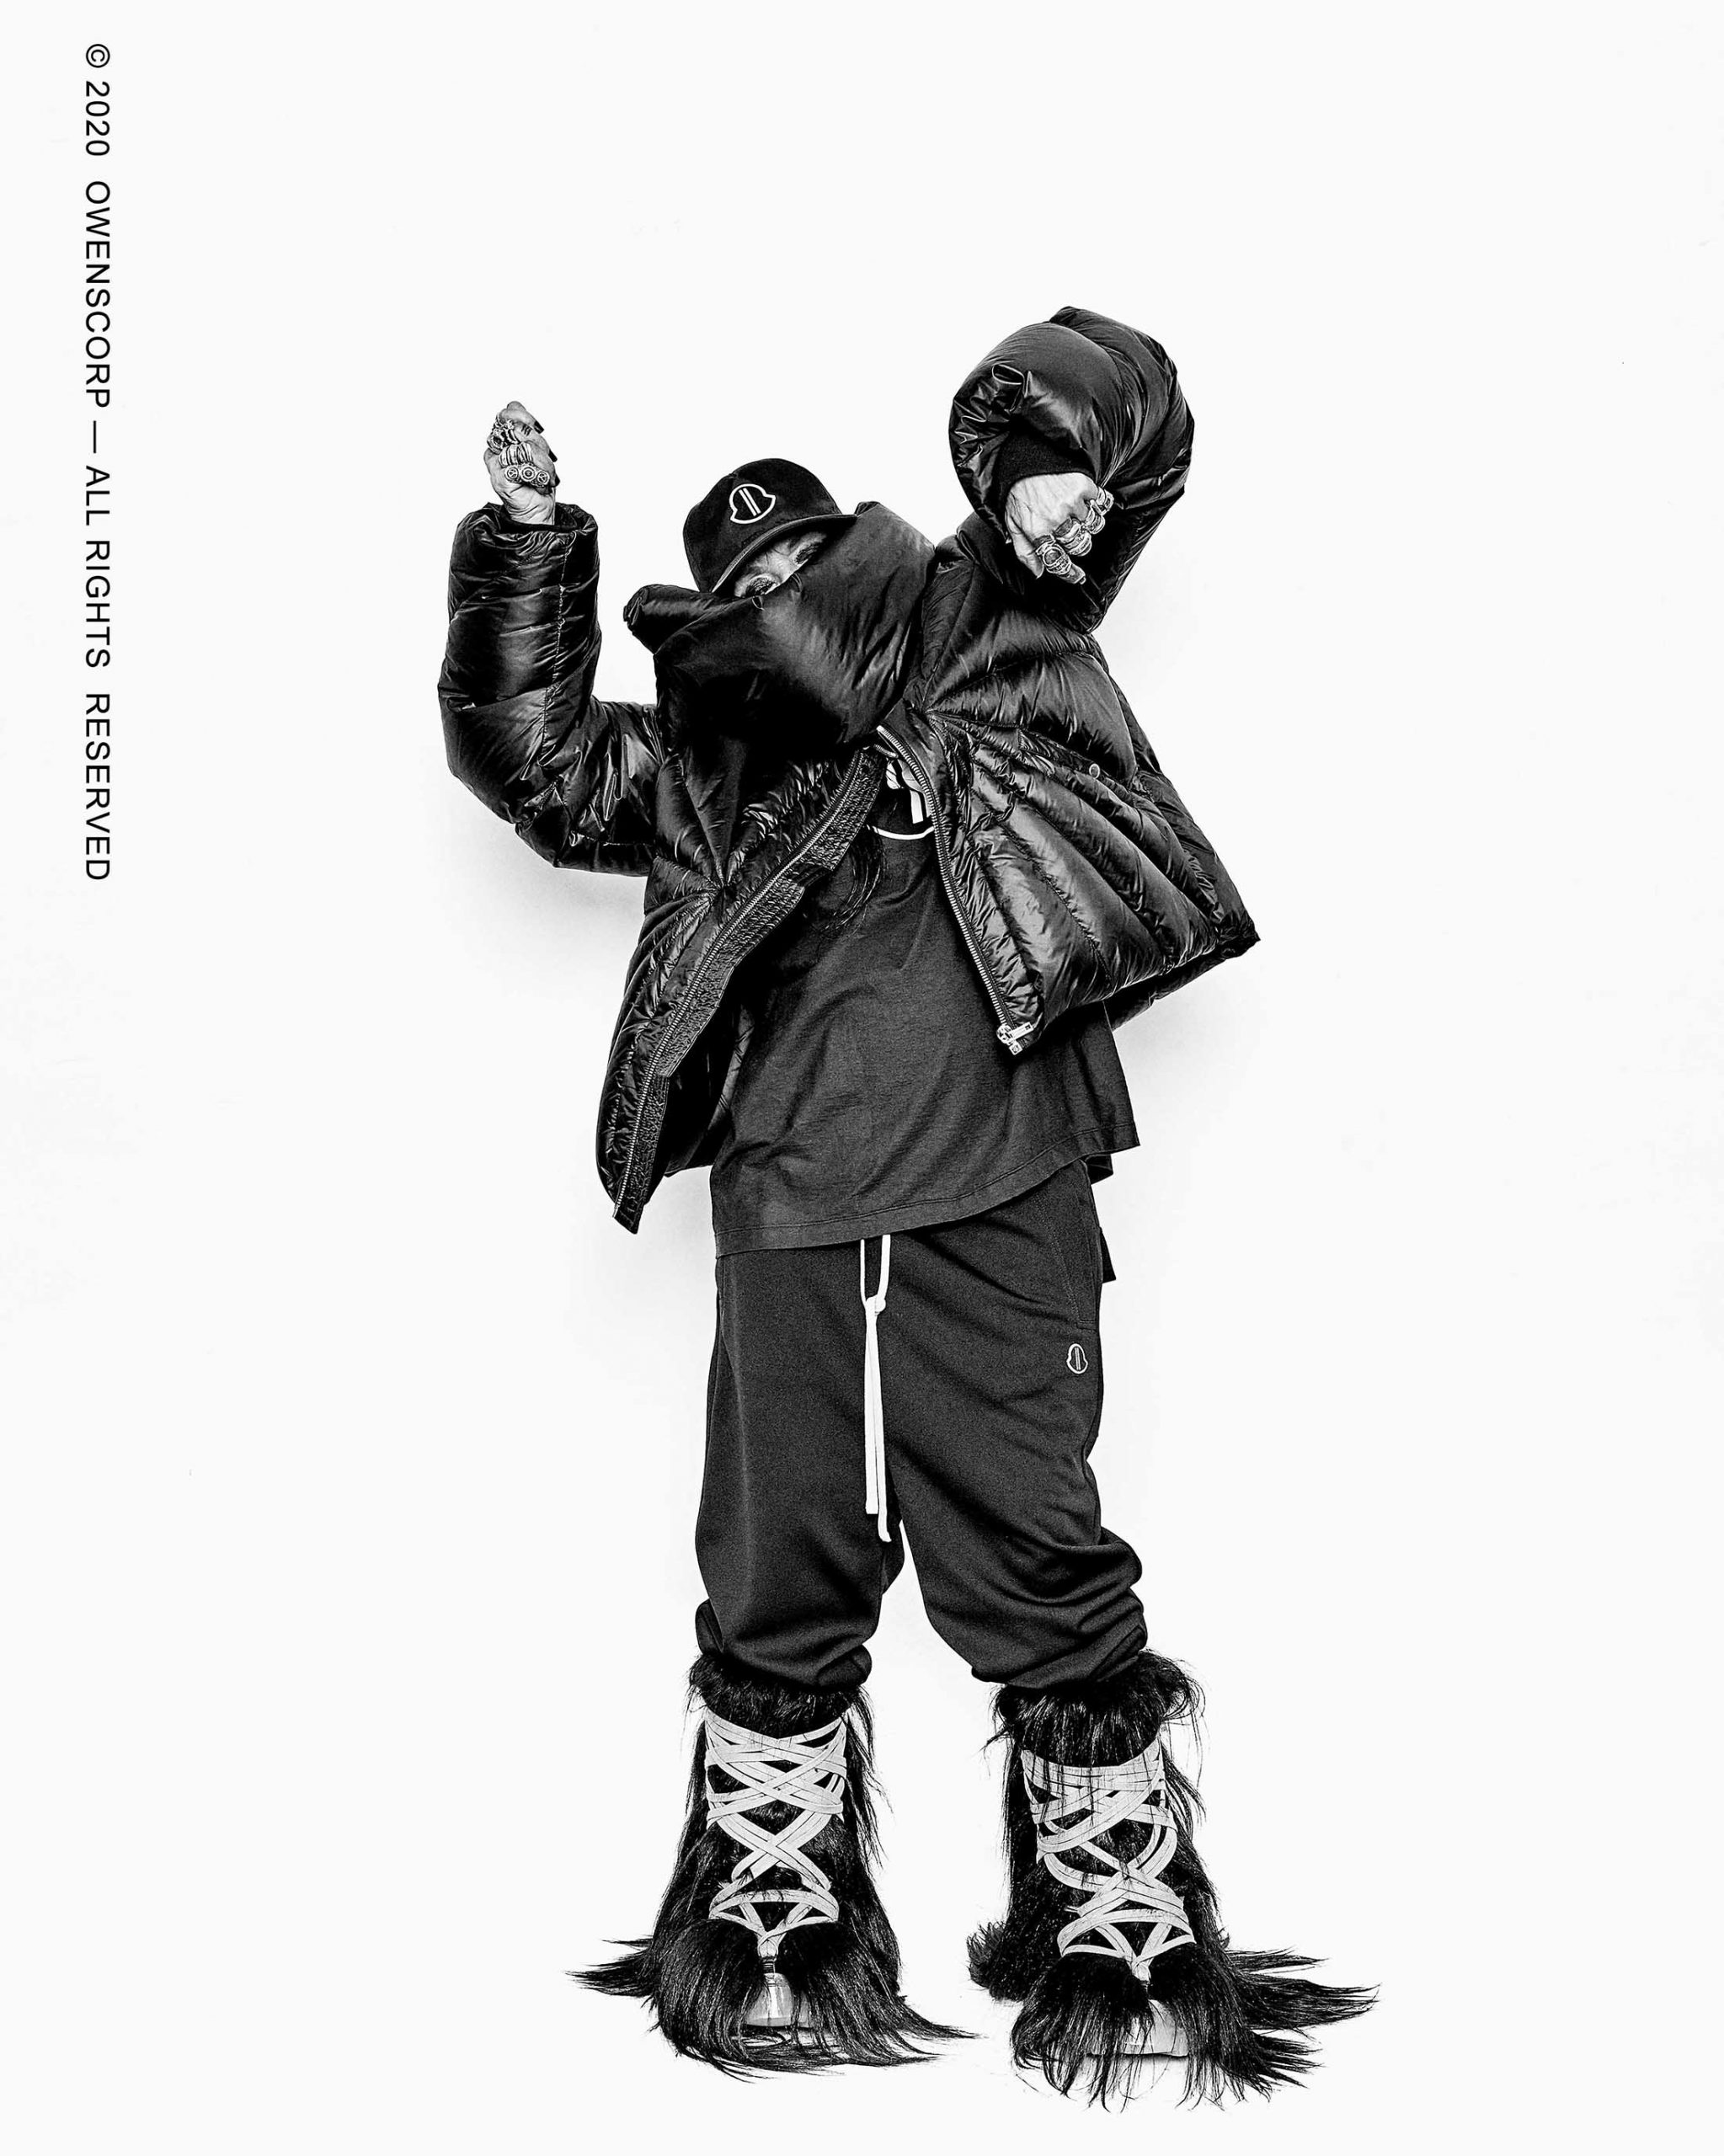 Michele Lamy Readies Milan For A New Moncler + Rick Owens Collection